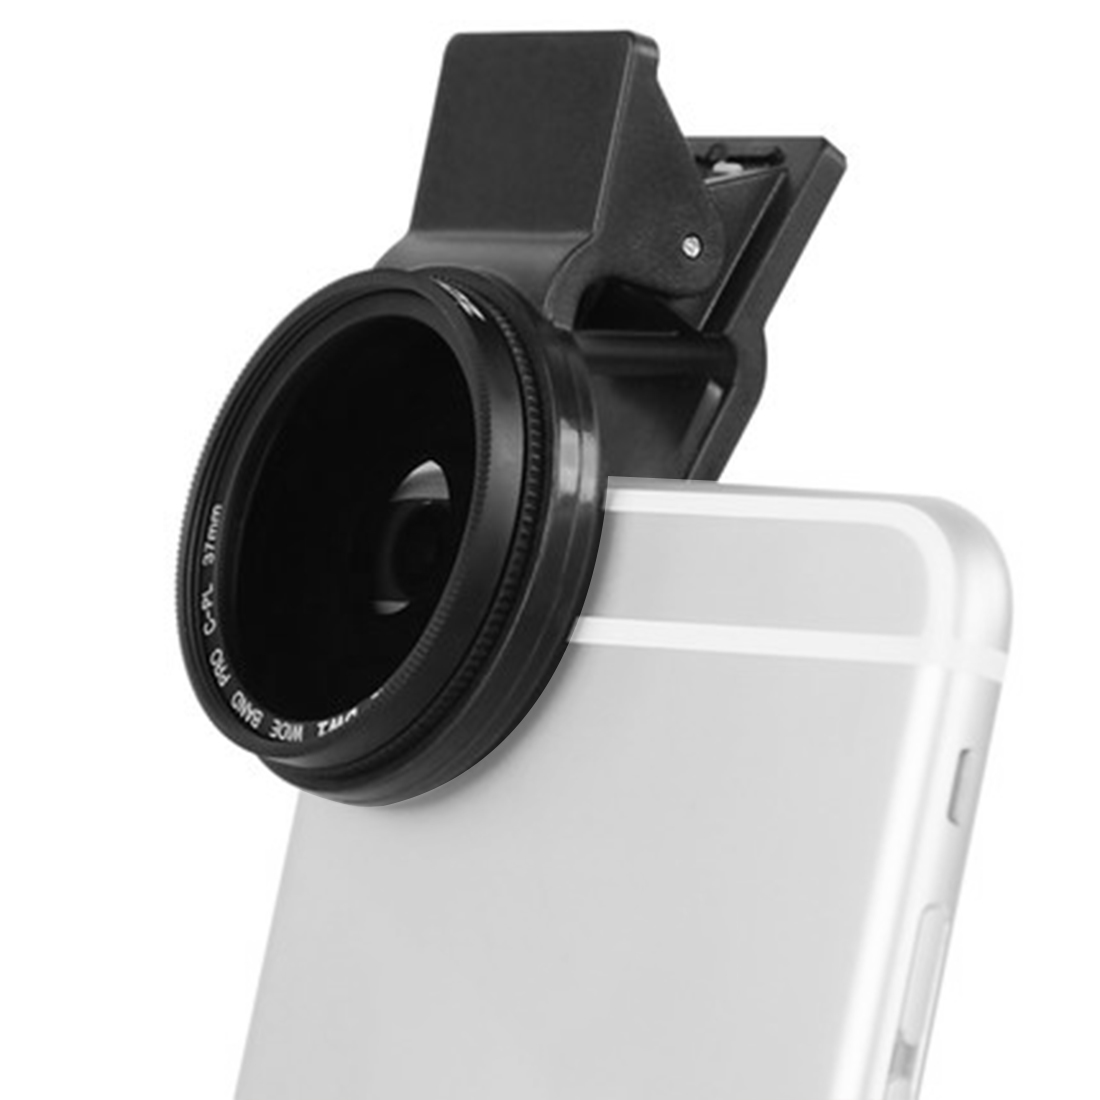 ZOMEI 37MM Professional <font><b>Phone</b></font> <font><b>Camera</b></font> Circular Polarizer CPL Lens for iPhone 7 6S Plus Samsung Galaxy Huawei HTC Windows Android image